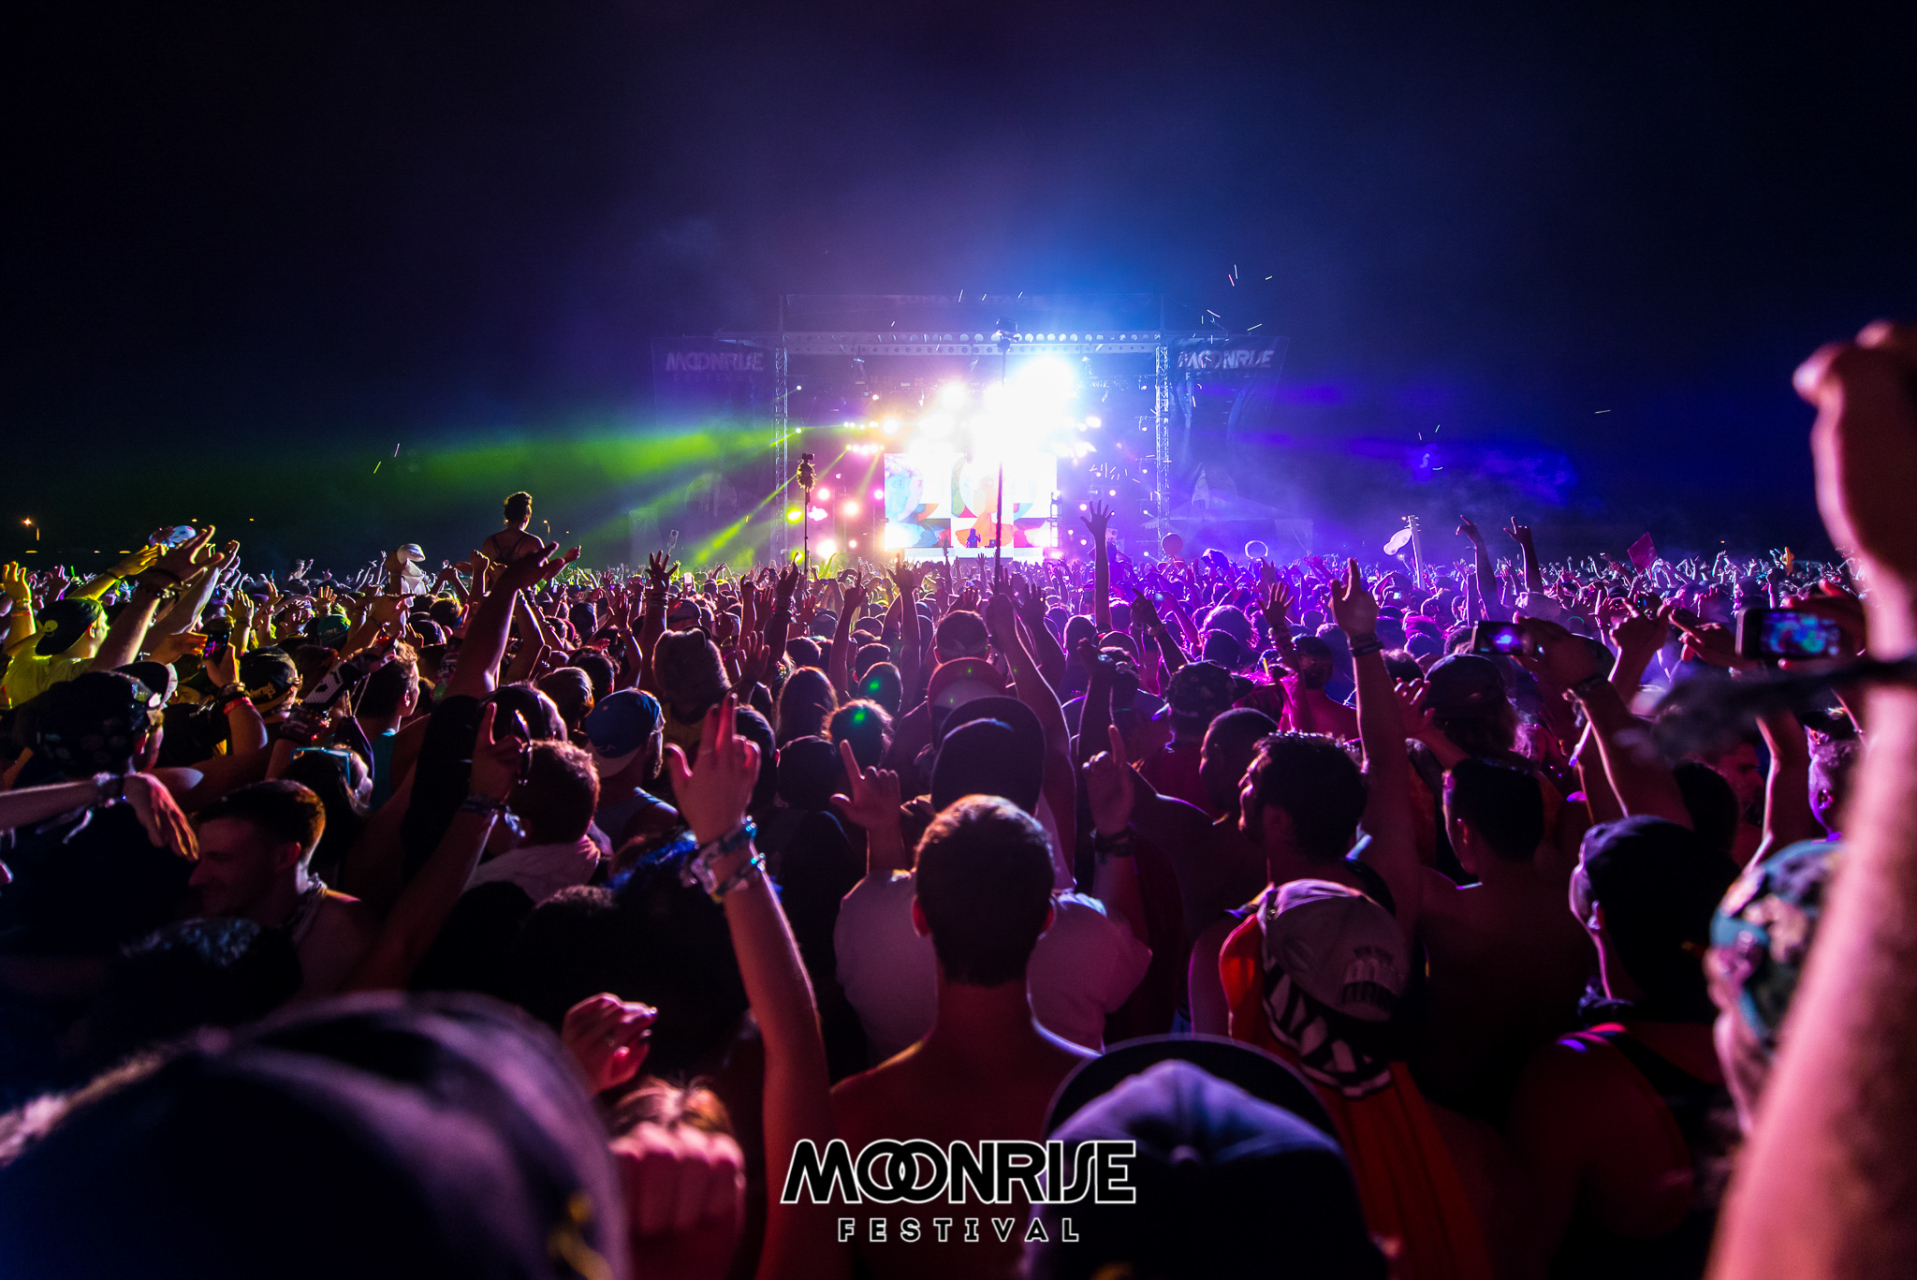 Moonrise_day2-114